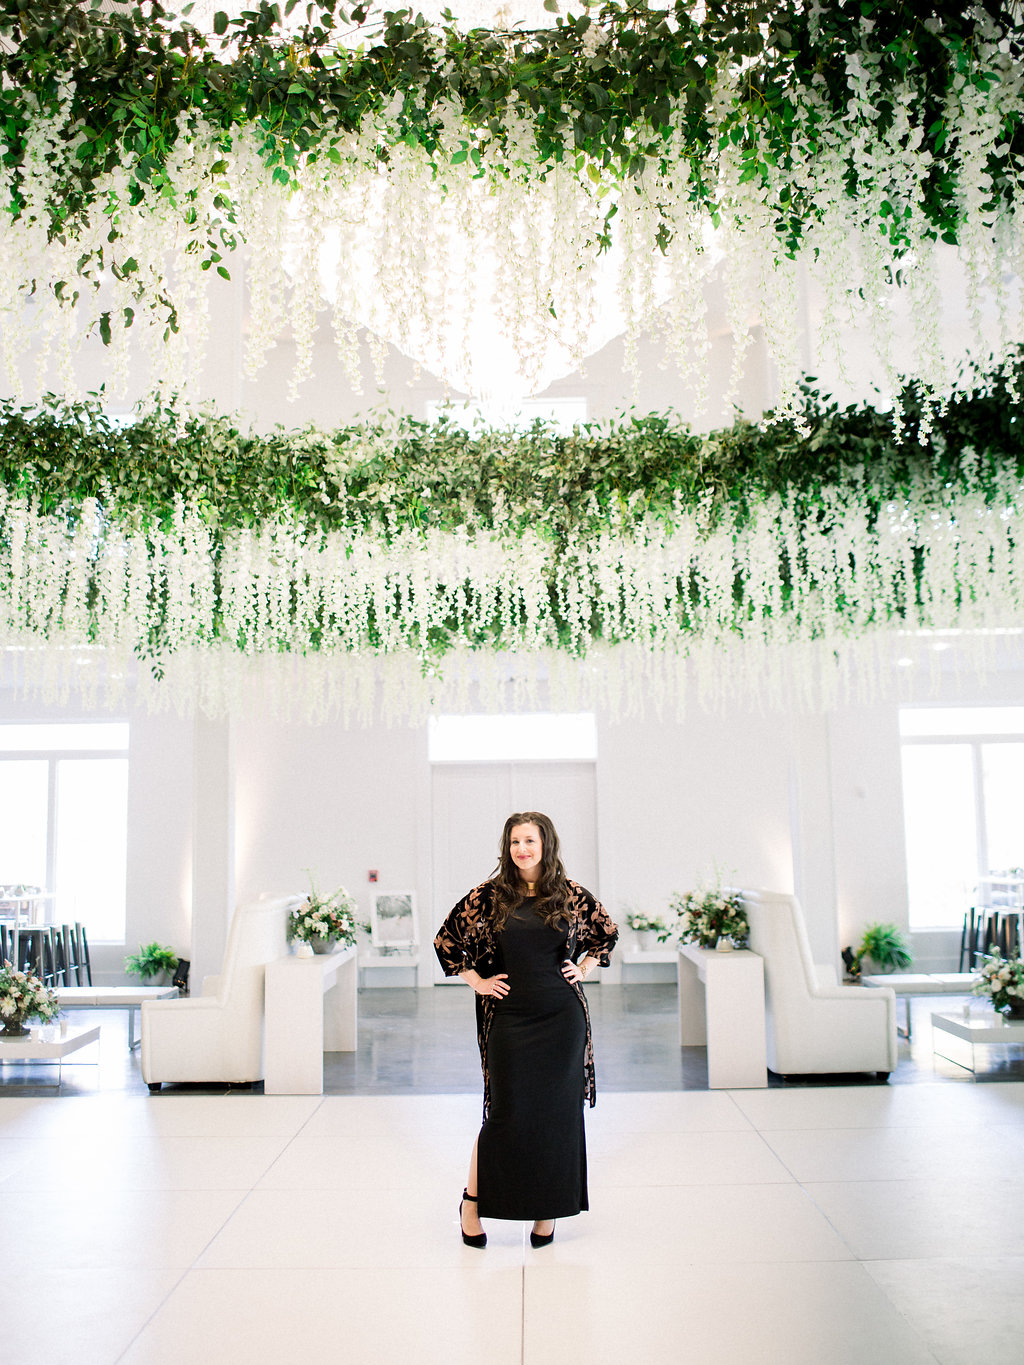 Jessica-Zimmerman-Events-Top-Wedding-Planner-Floral-Design-Expert-Speaker.jpg